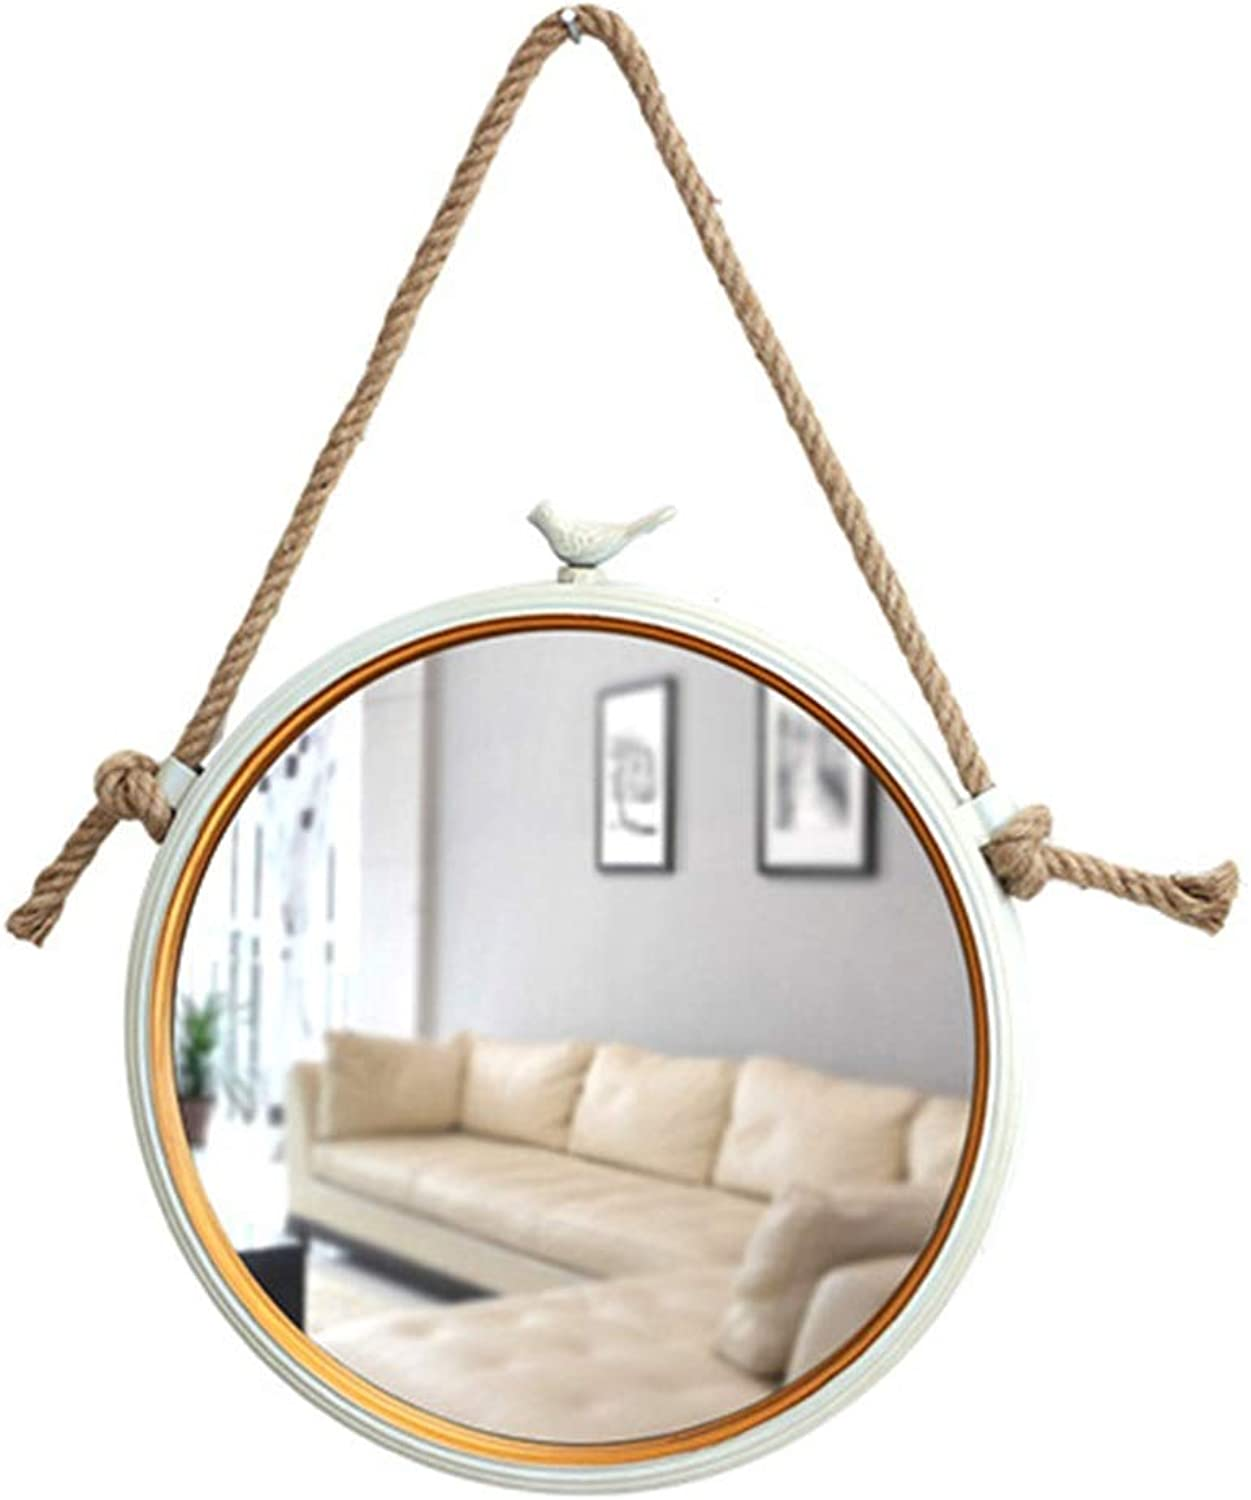 LH-Mirror Nordic Hanging Mirror with Hemp Rope Modern Decorative Wall Mirror   Bathroom Mirror   Wall Mounted Vanity Makeup and Shaving Mirror   White Metal Frame (Size   Diameter 35cm)